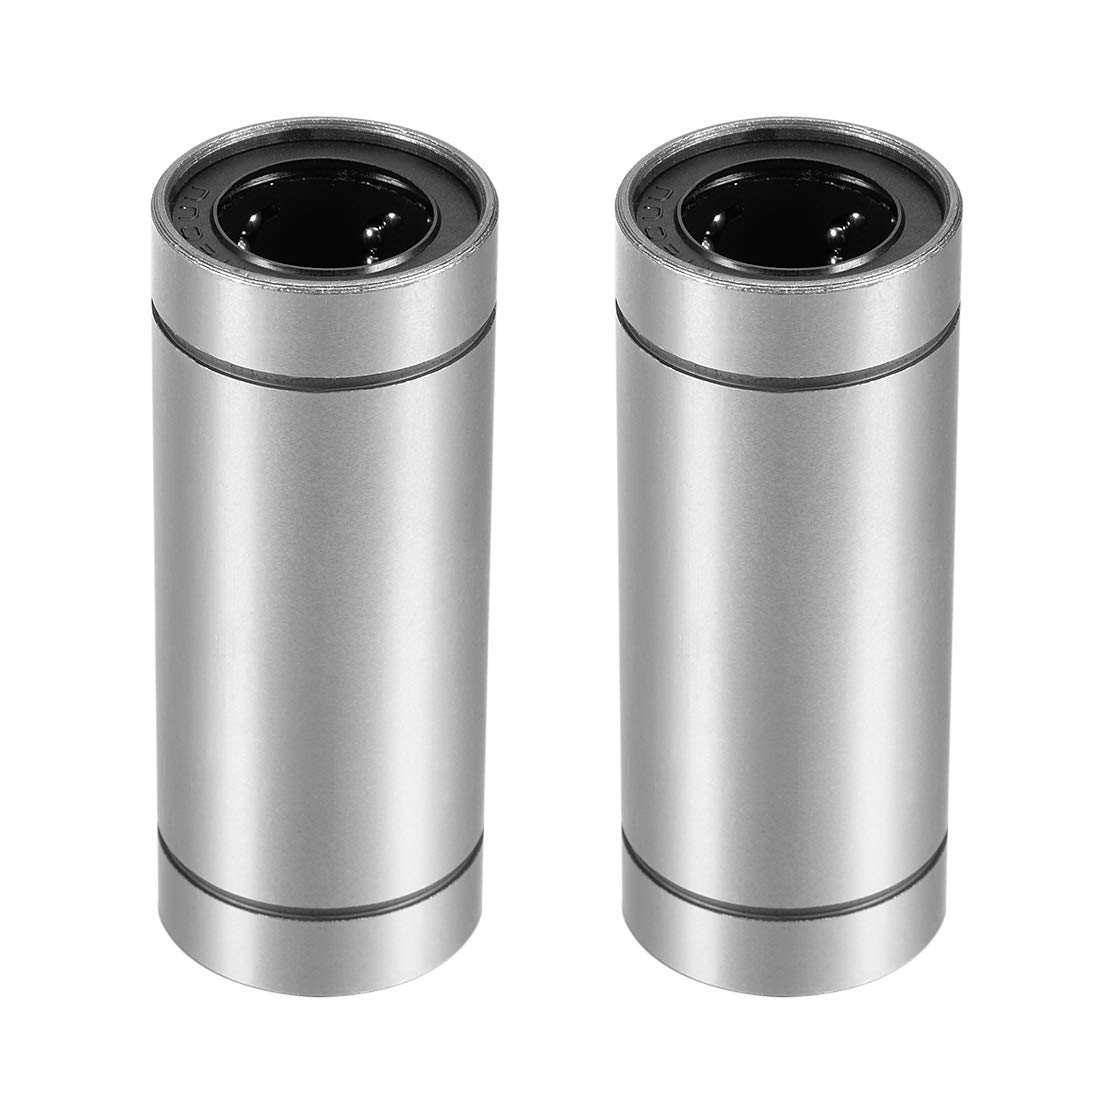 uxcell LM20UU Extra Long Linear Ball Bearings, 20mm Bore Dia, 32mm OD, 80mm Length Pack of 2